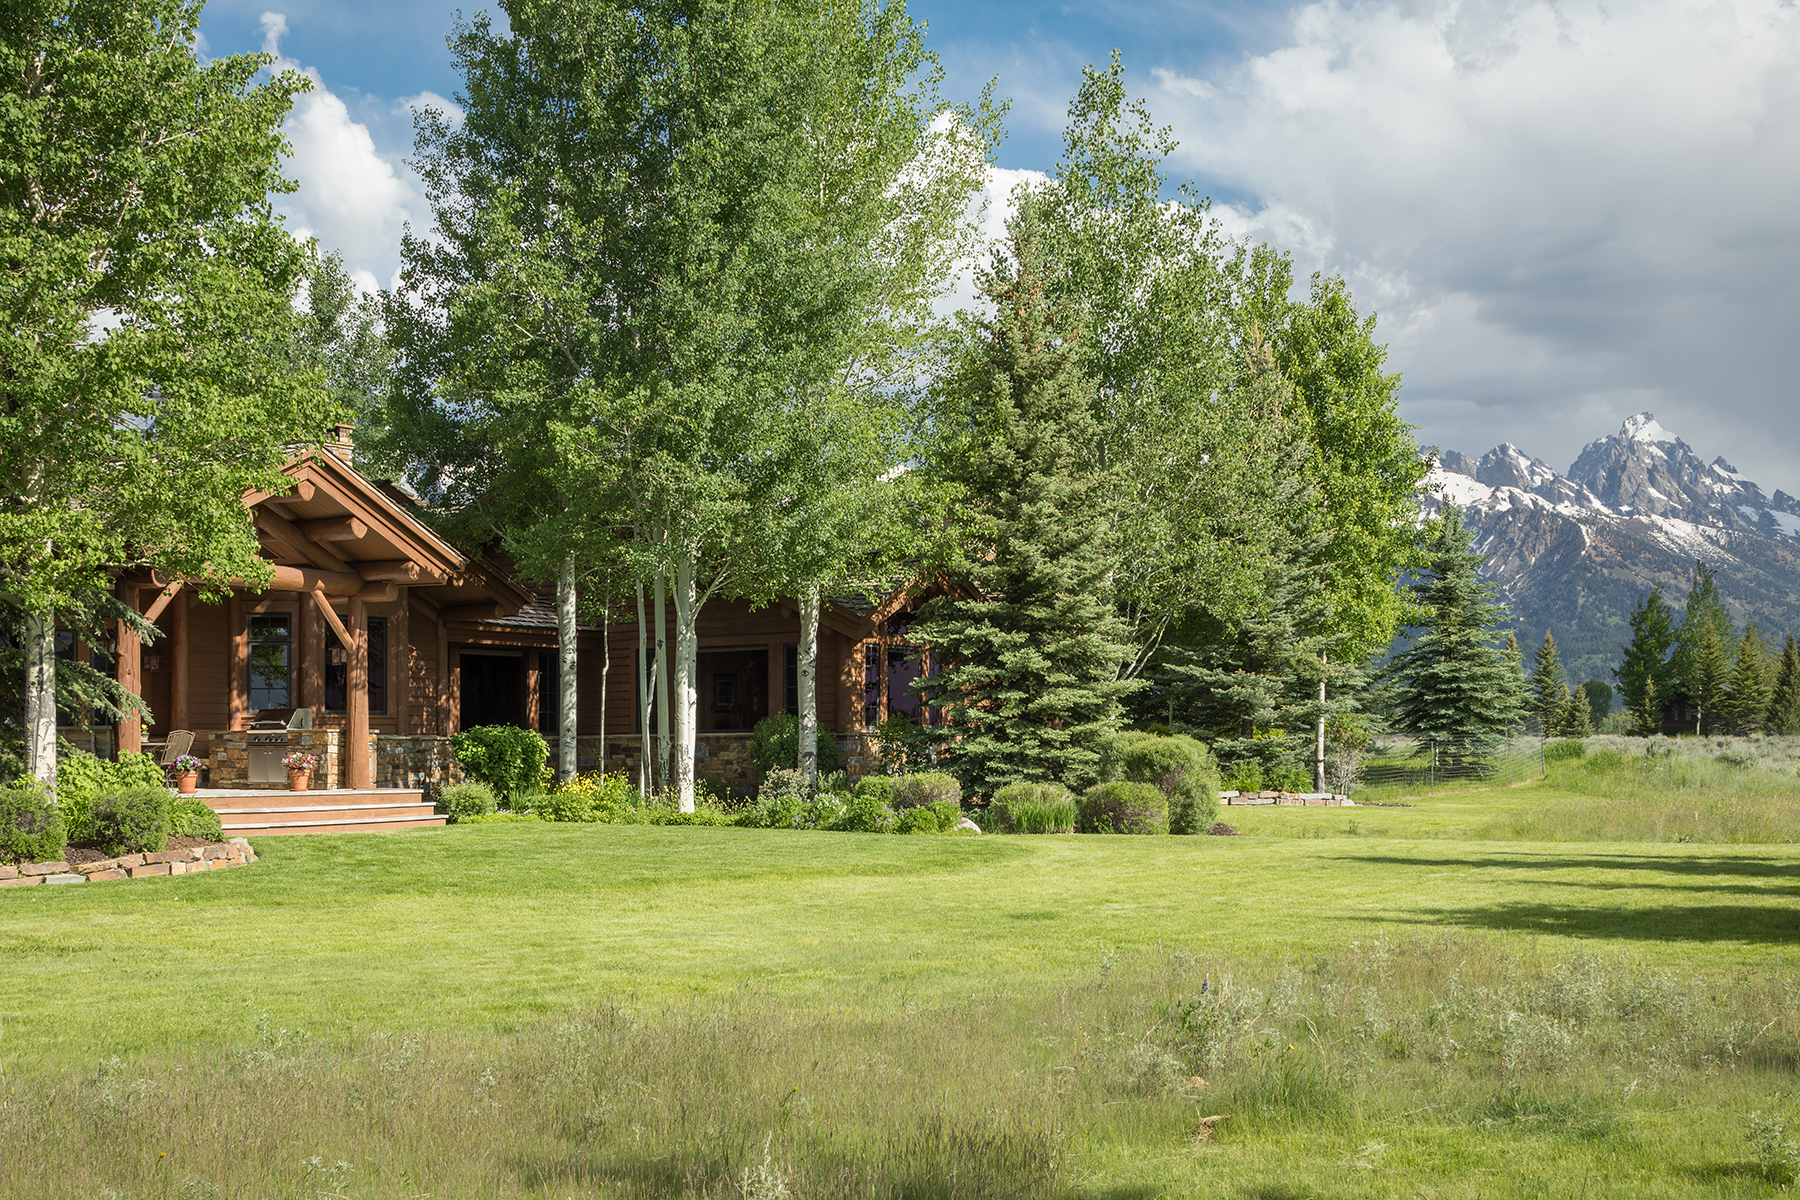 Single Family Homes for Sale at Elegant Interior, Exquisite Views 7330 Ryegrass Rd Jackson, Wyoming 83001 United States